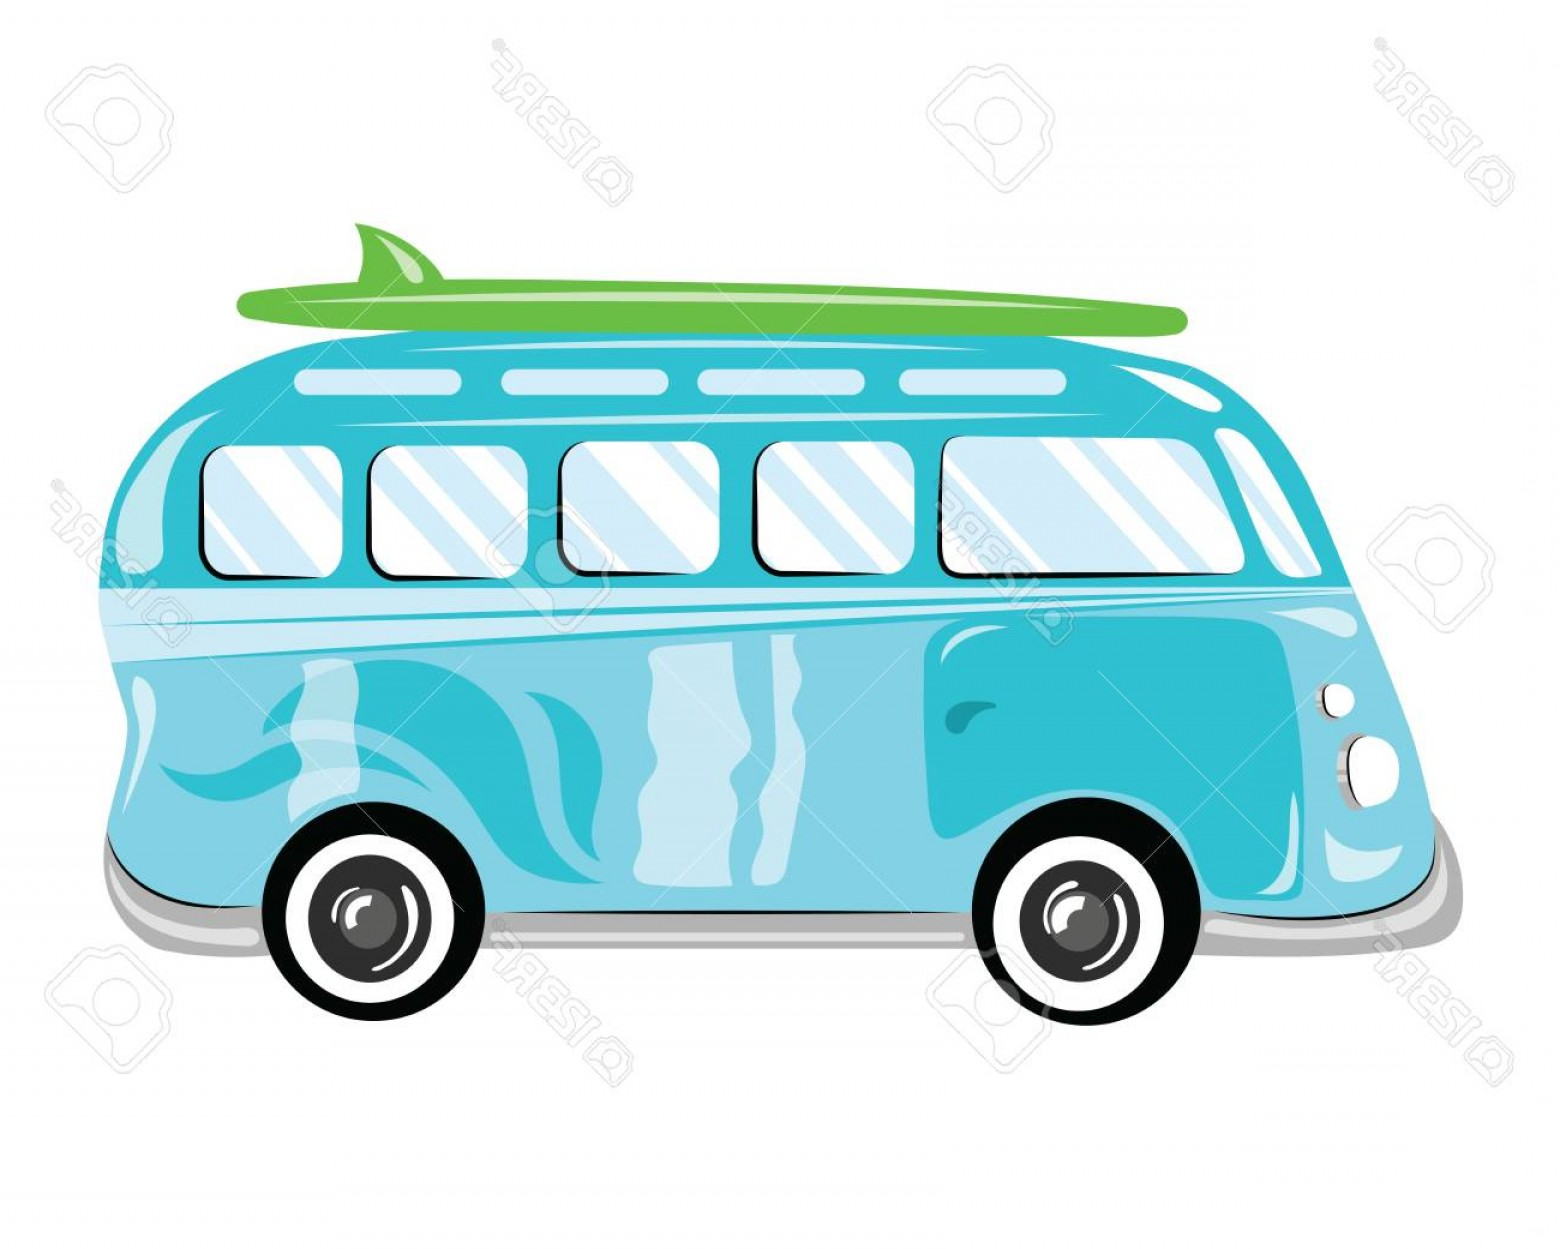 Volkswagen Bus Vector: Photostock Vector A Cartoon Bus Vector Illustration Of Transport Picture Of A Bus Of Children